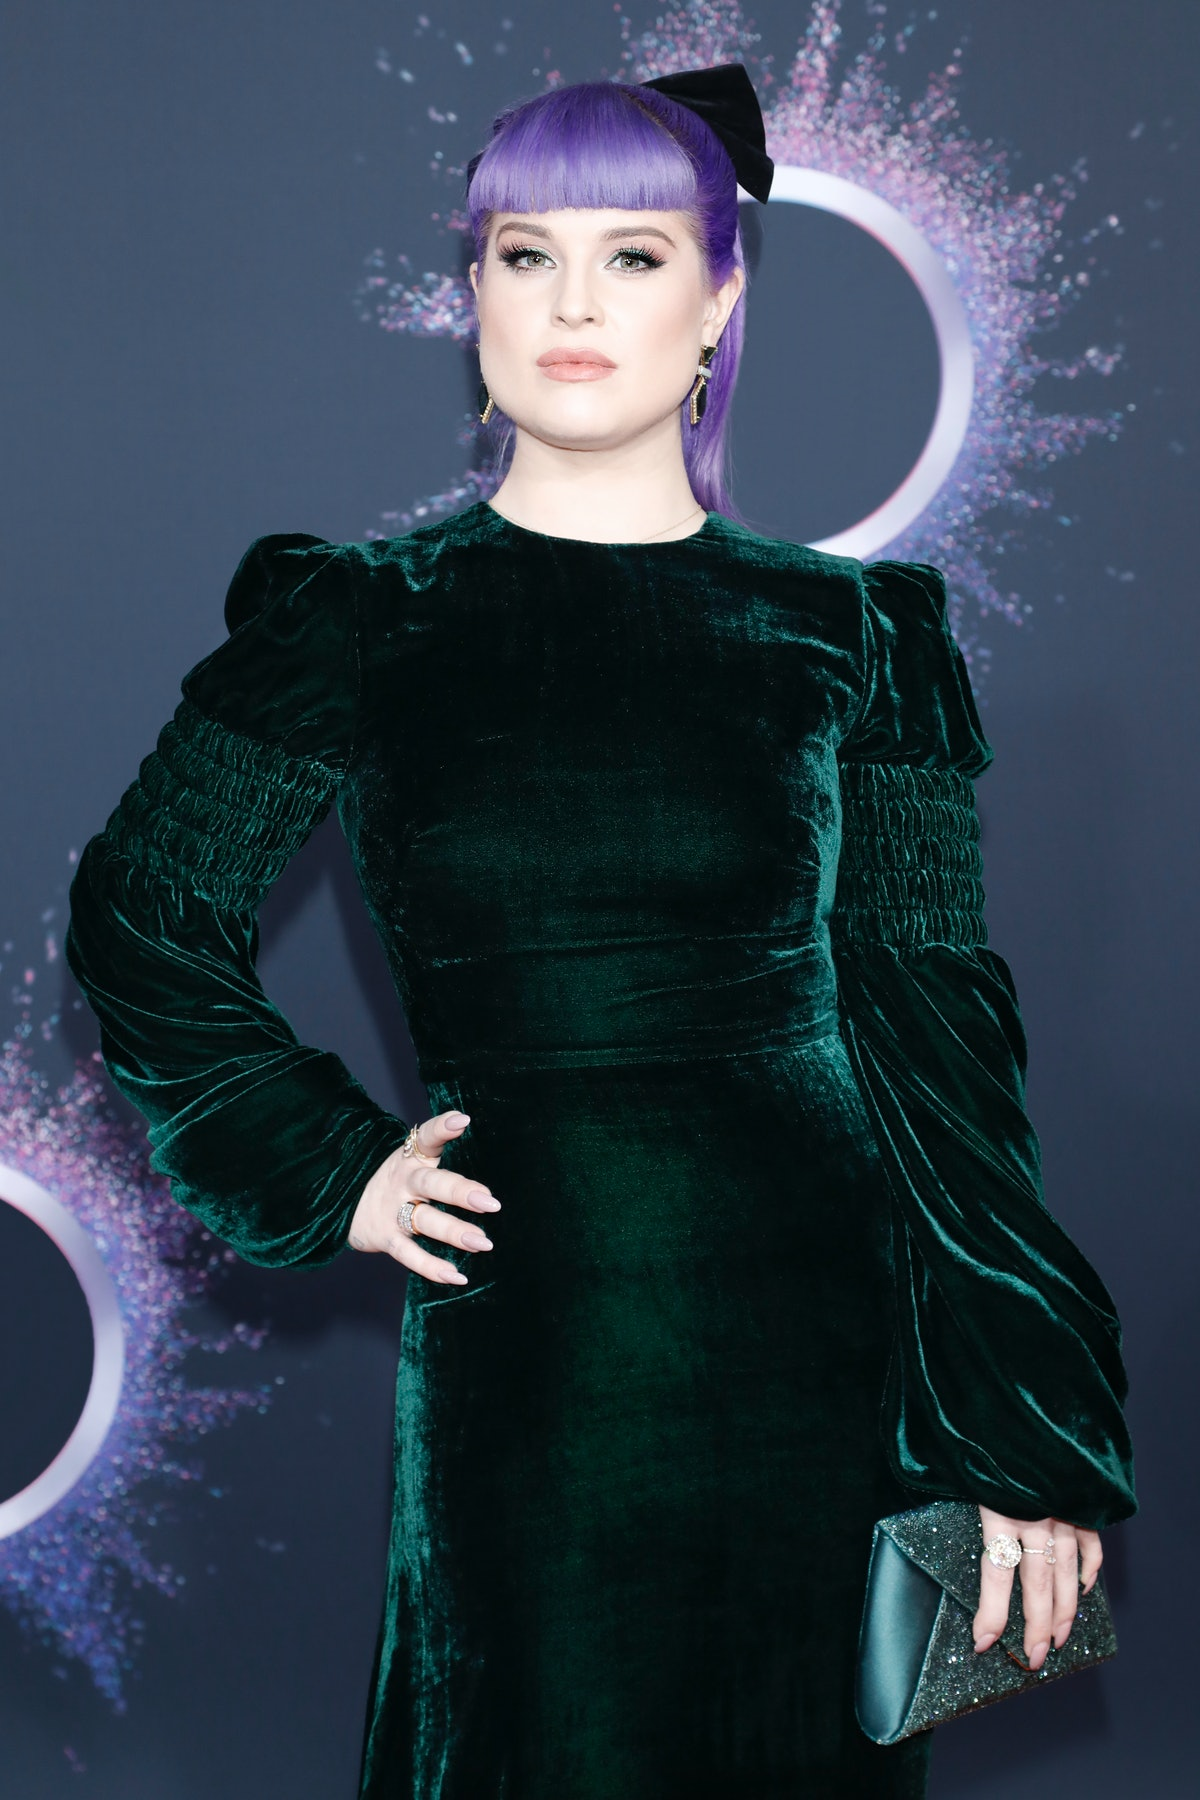 LOS ANGELES, USA - NOVEMBER 24: (EDITORS NOTE: Image has been digitally retouched) Kelly Osbourne arrives at the 2019 American Music Awards at the Microsoft Theater on November 24, 2019 in Los Angeles, California.  (Photo by Kurt Krieger - Corbis/Corbis via Getty Images)